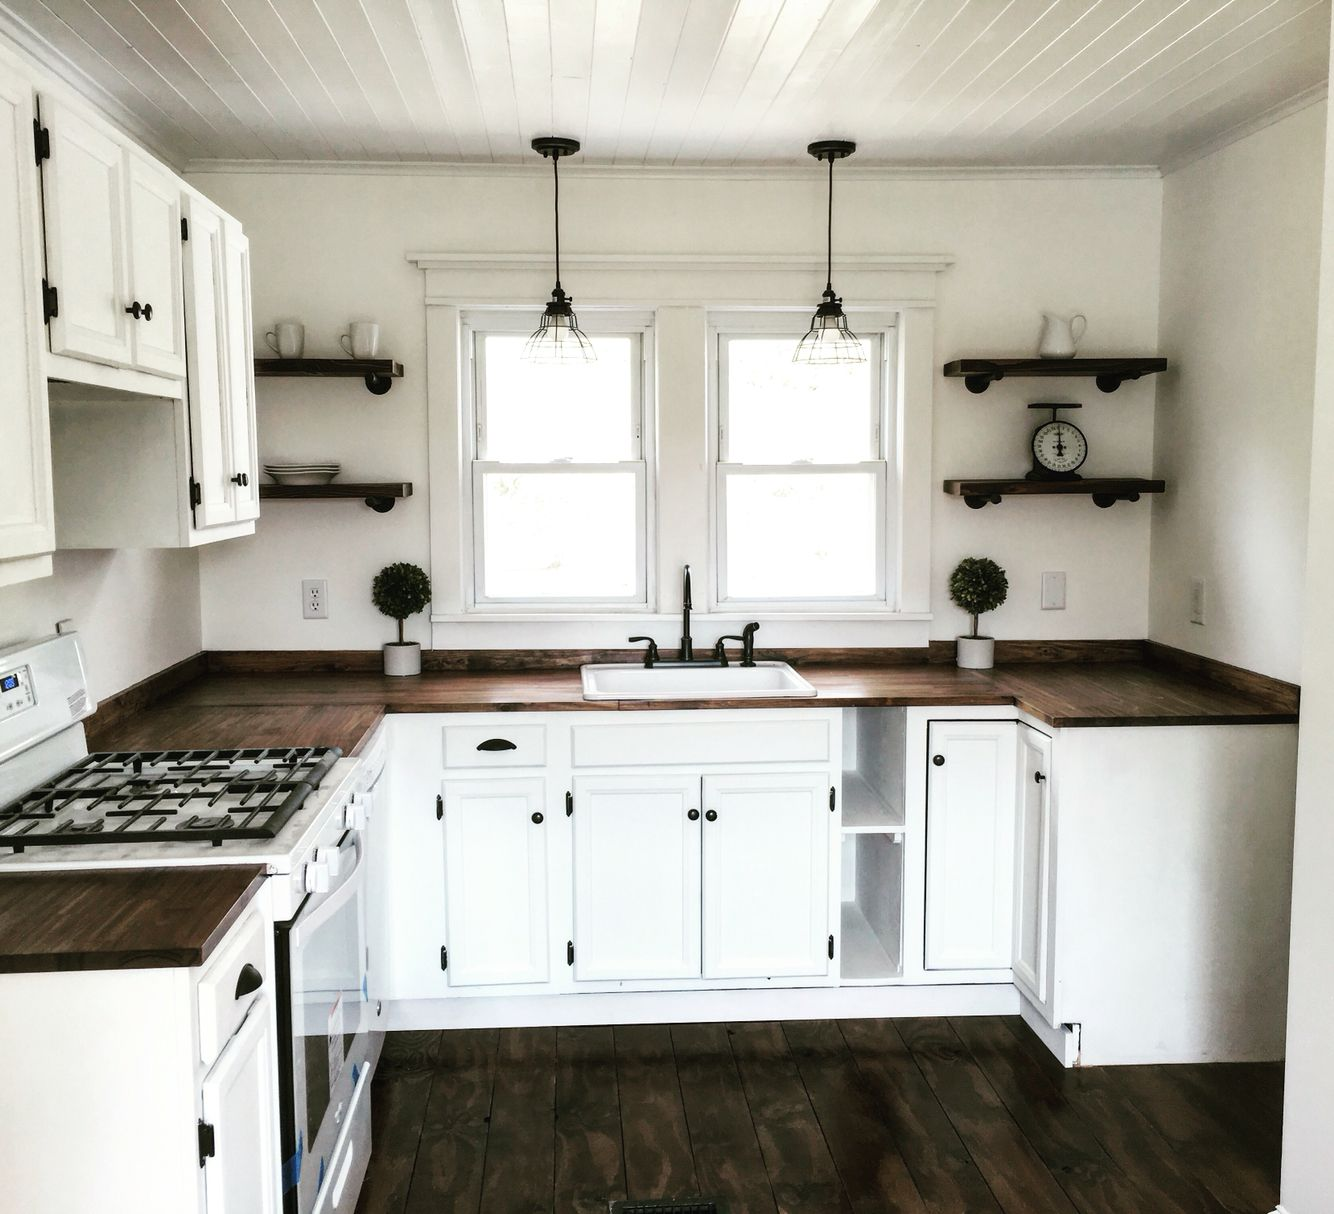 Best Farmhouse Kitchen On The Cheap Cabinets From Craigslist 400 x 300